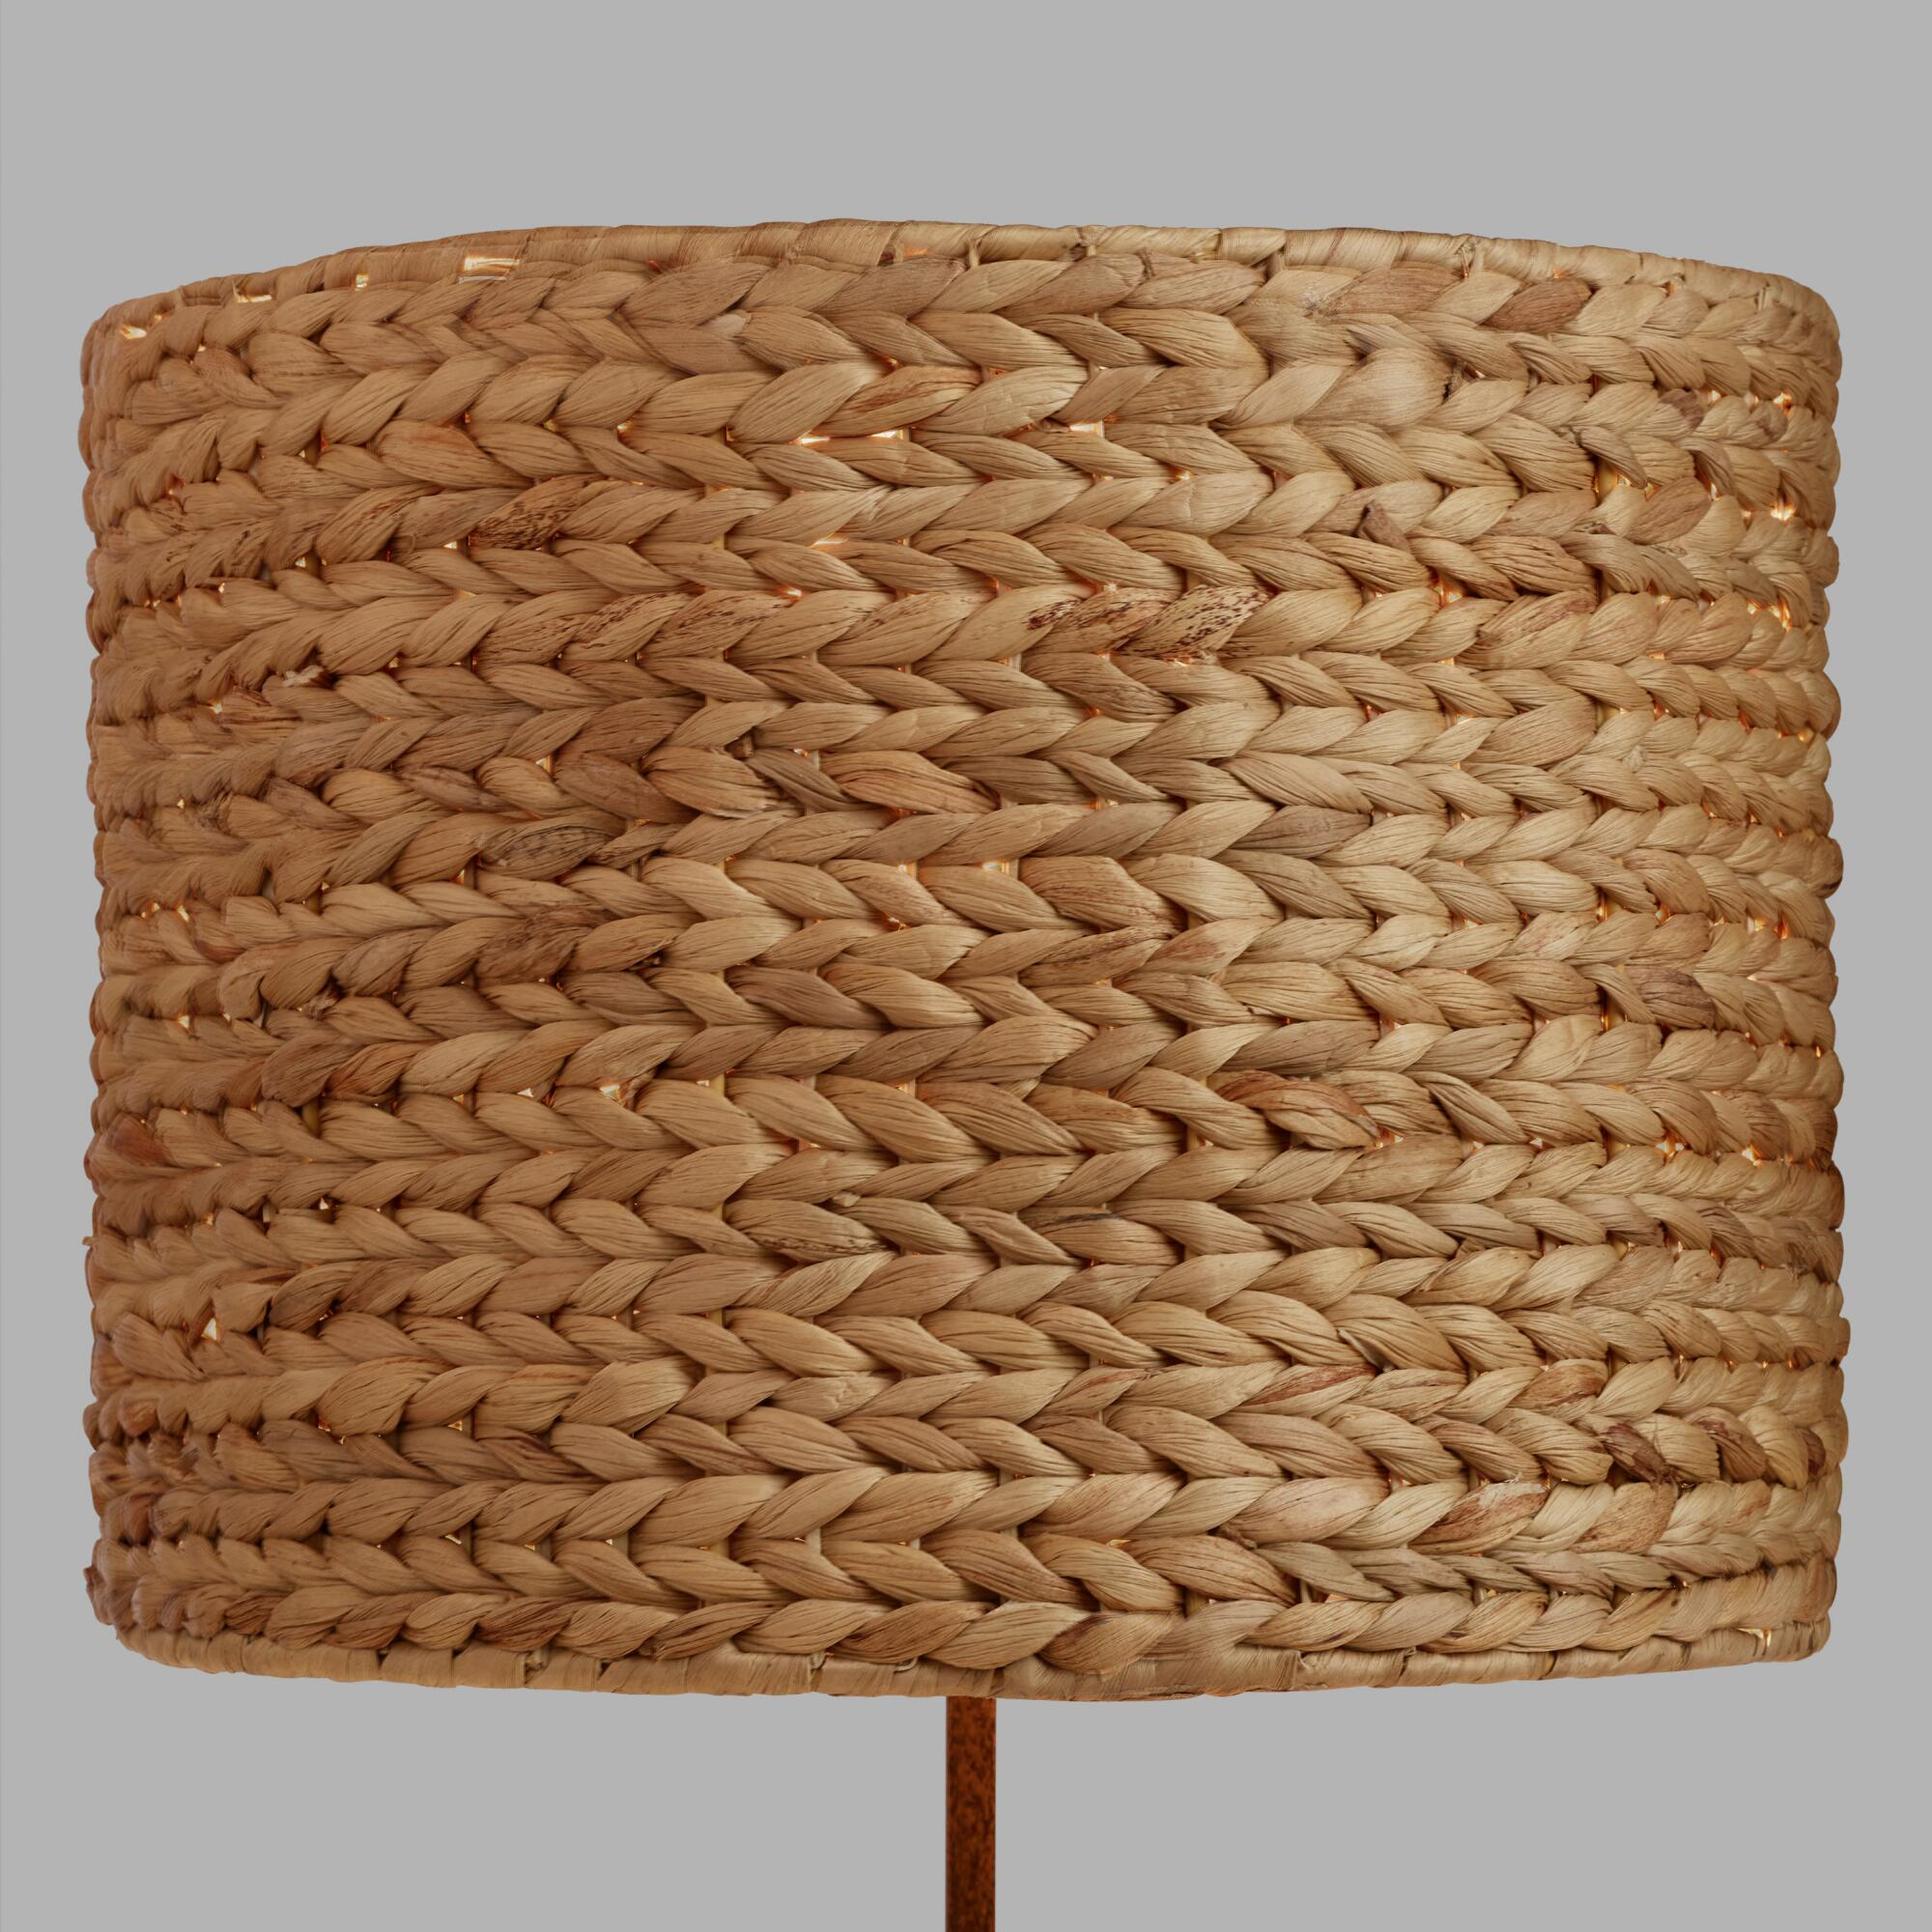 Orange and turquoise lamp shade - Woven Water Hyacinth Drum Table Lamp Shade